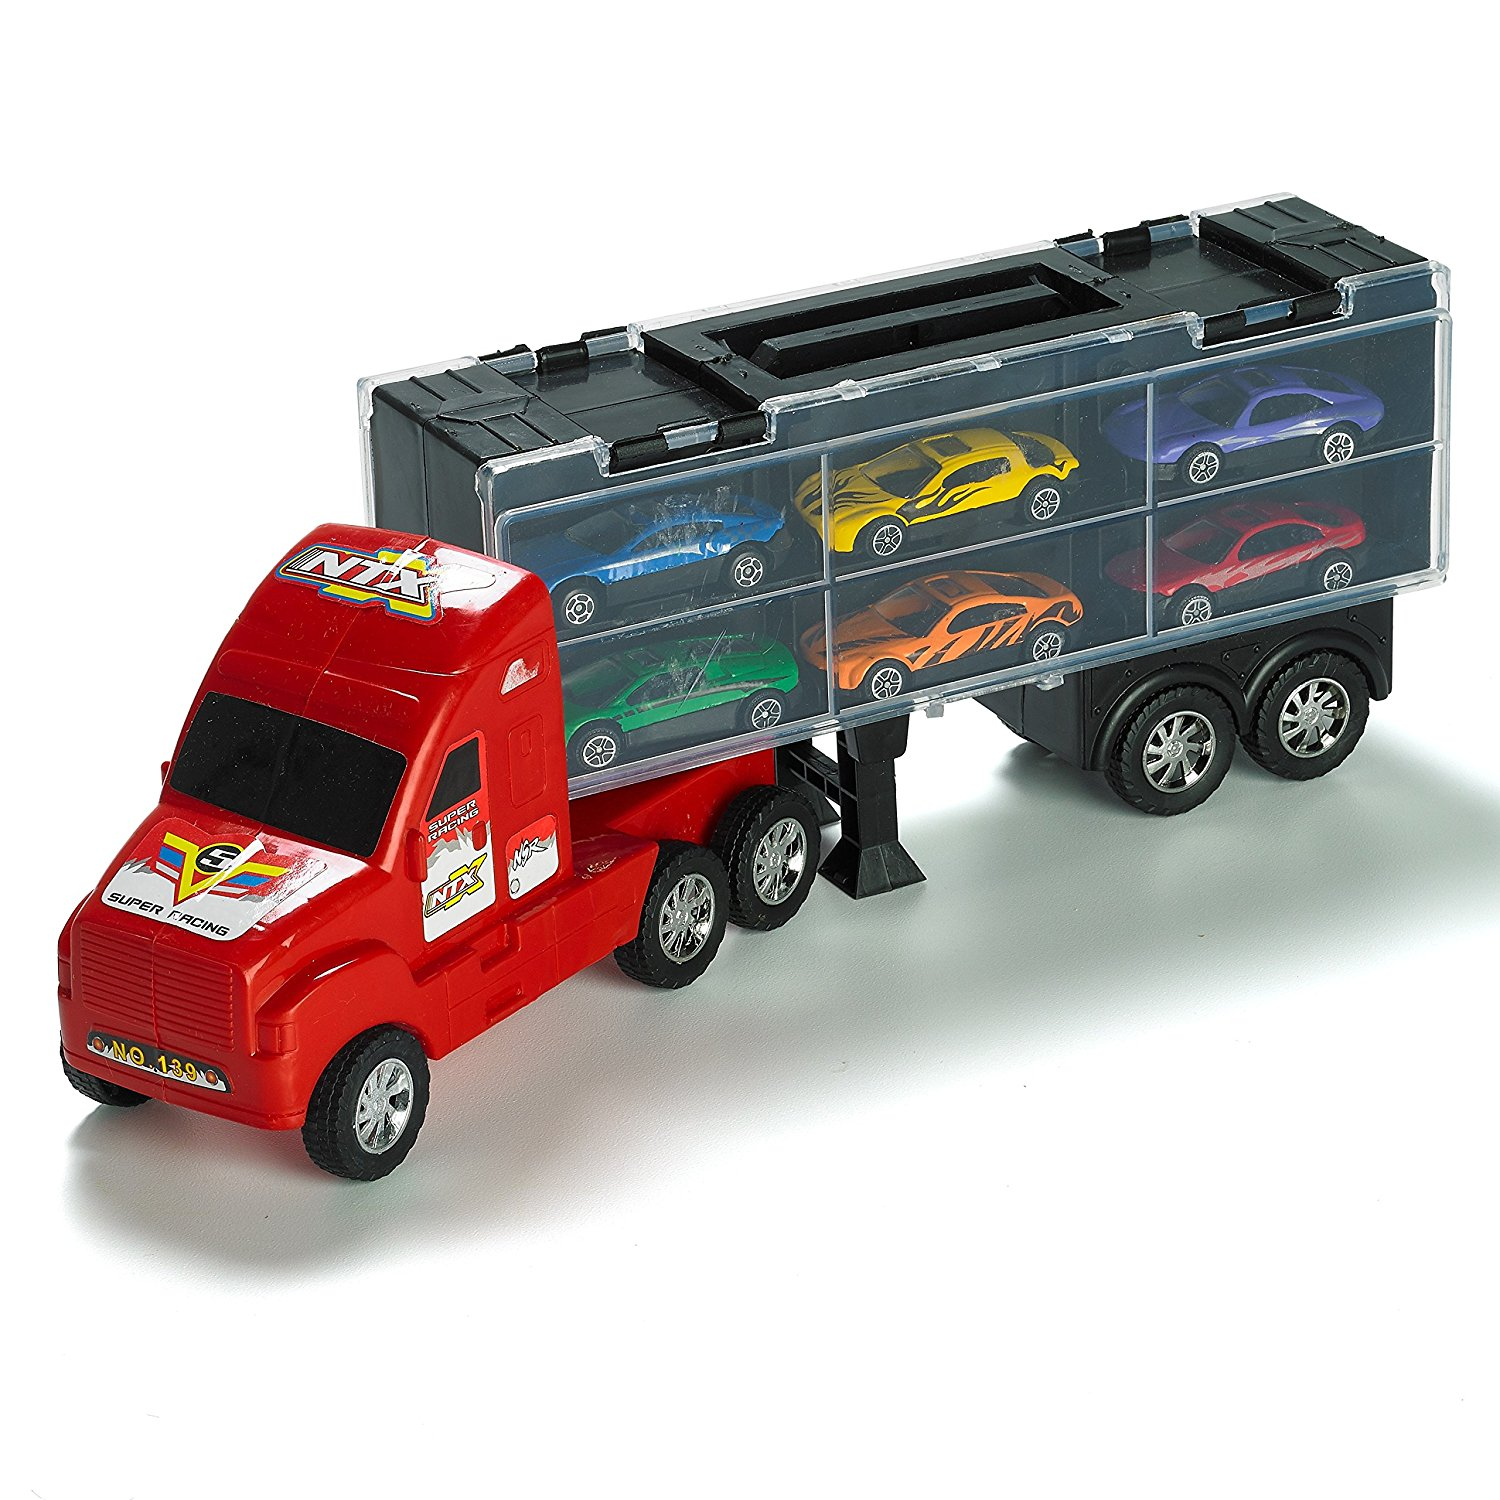 10 Best Christmas Toys Gifts for Kids 2018 UK Buy Unique Gifts